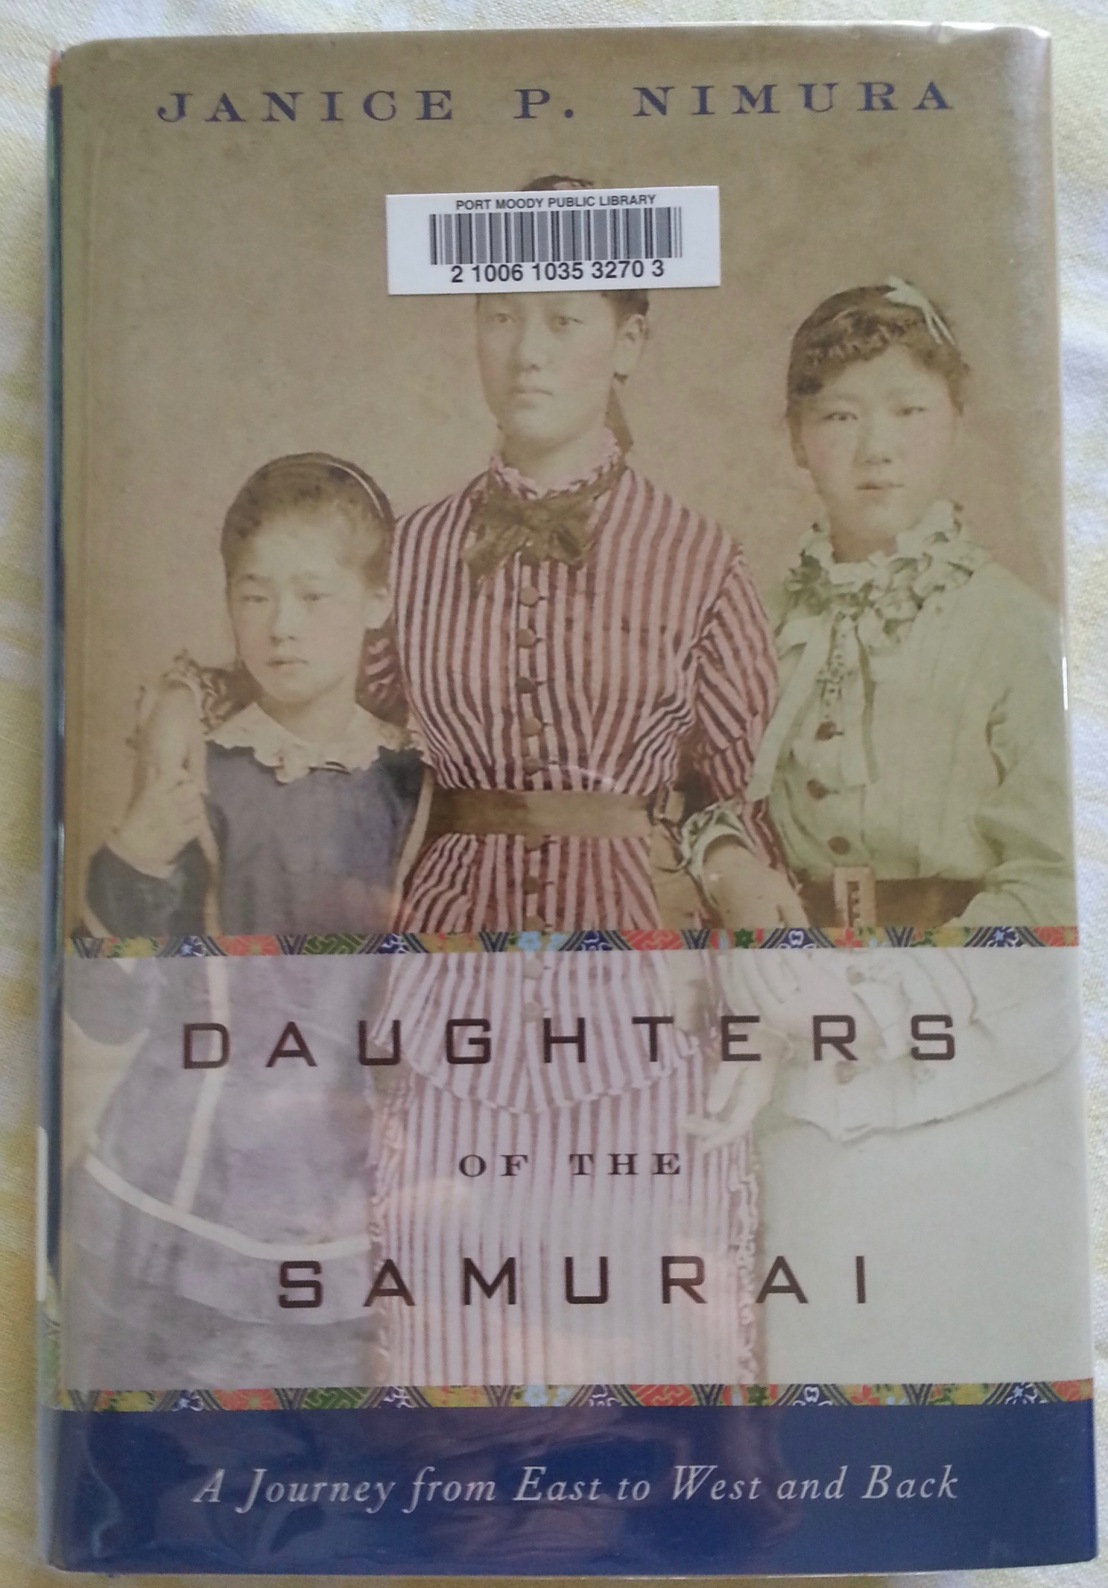 Janice P. Nimura's — Daughters of the Samurai